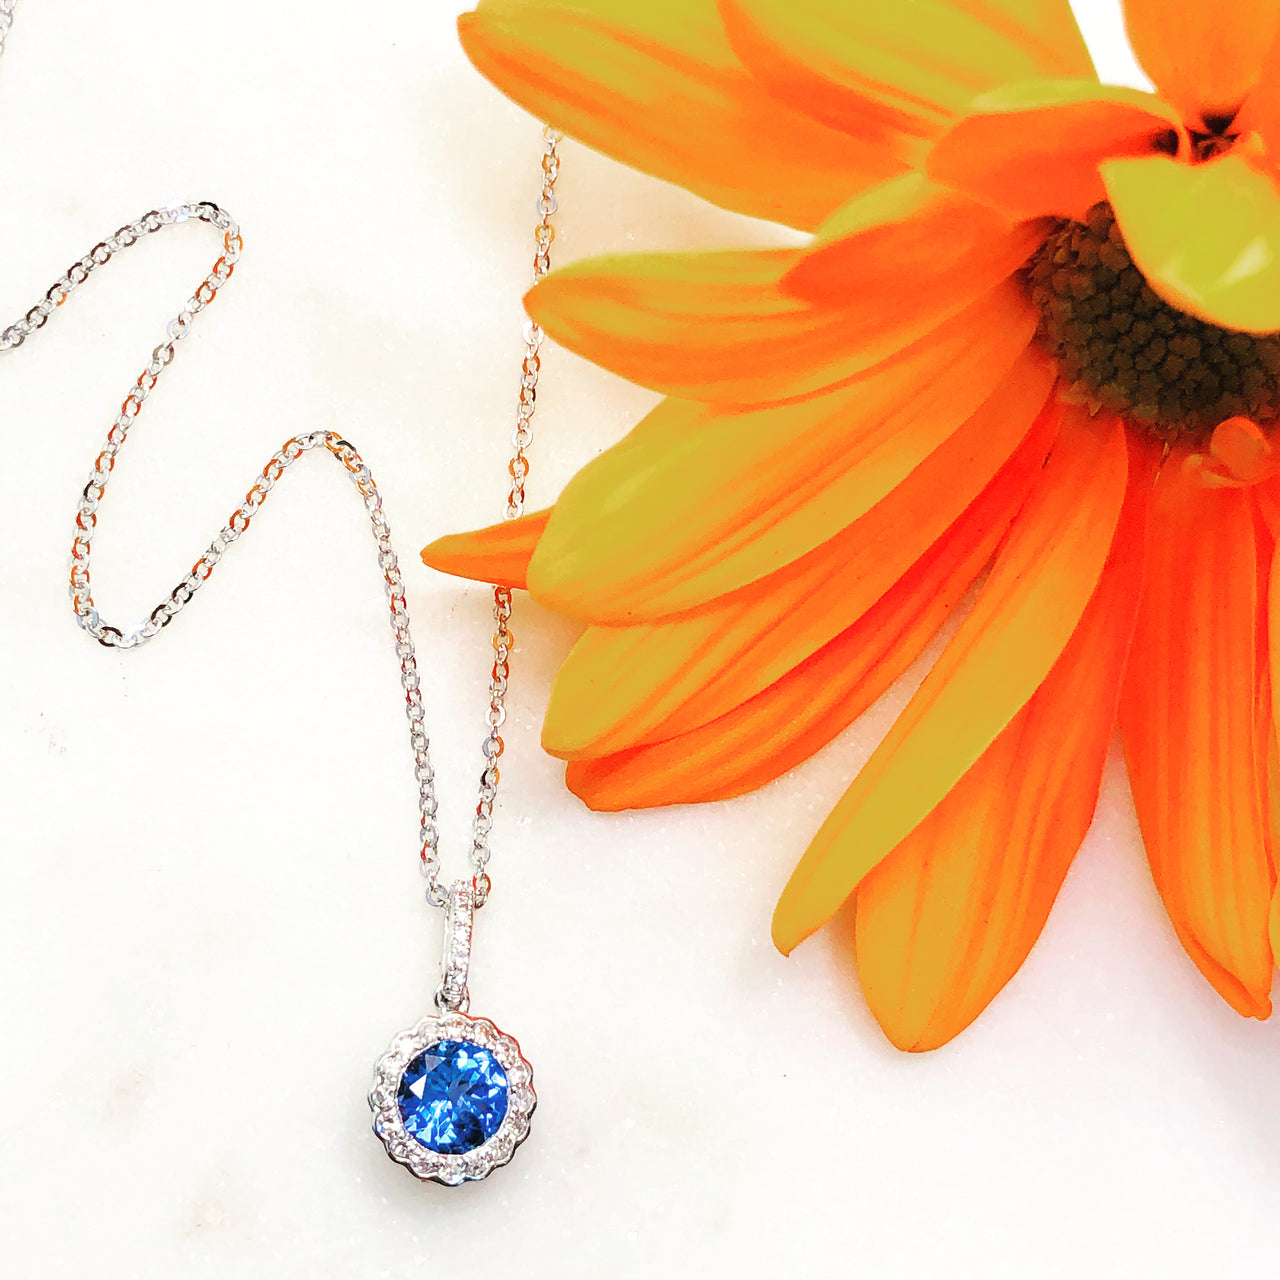 14K White Gold Blue Topaz and Diamond Necklace.